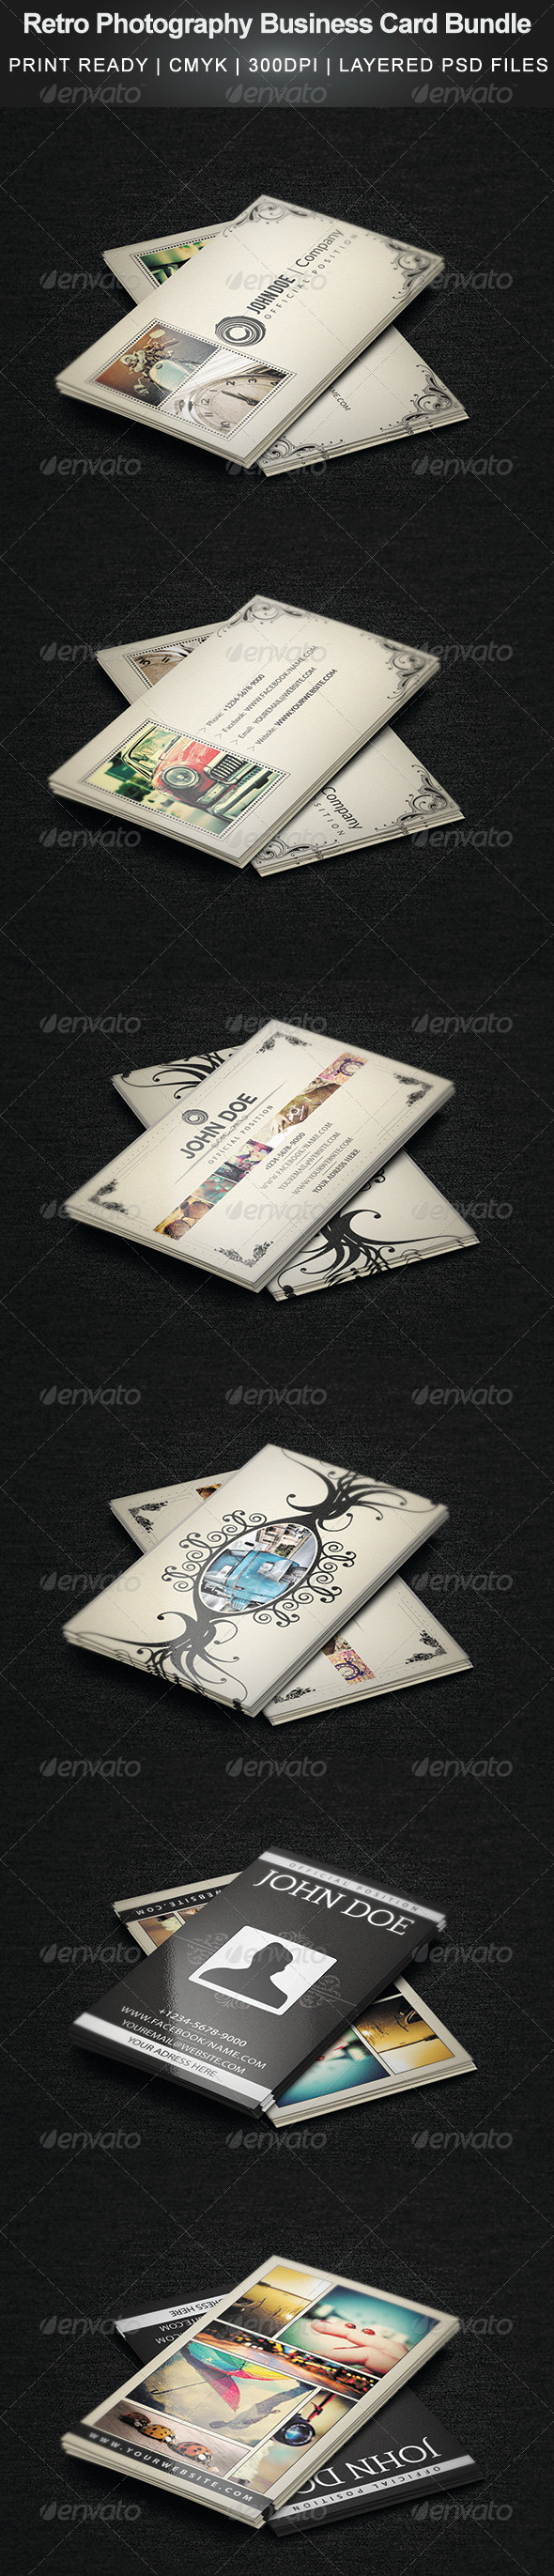 Retro Photography Business Card Bundle - Creative Business Cards